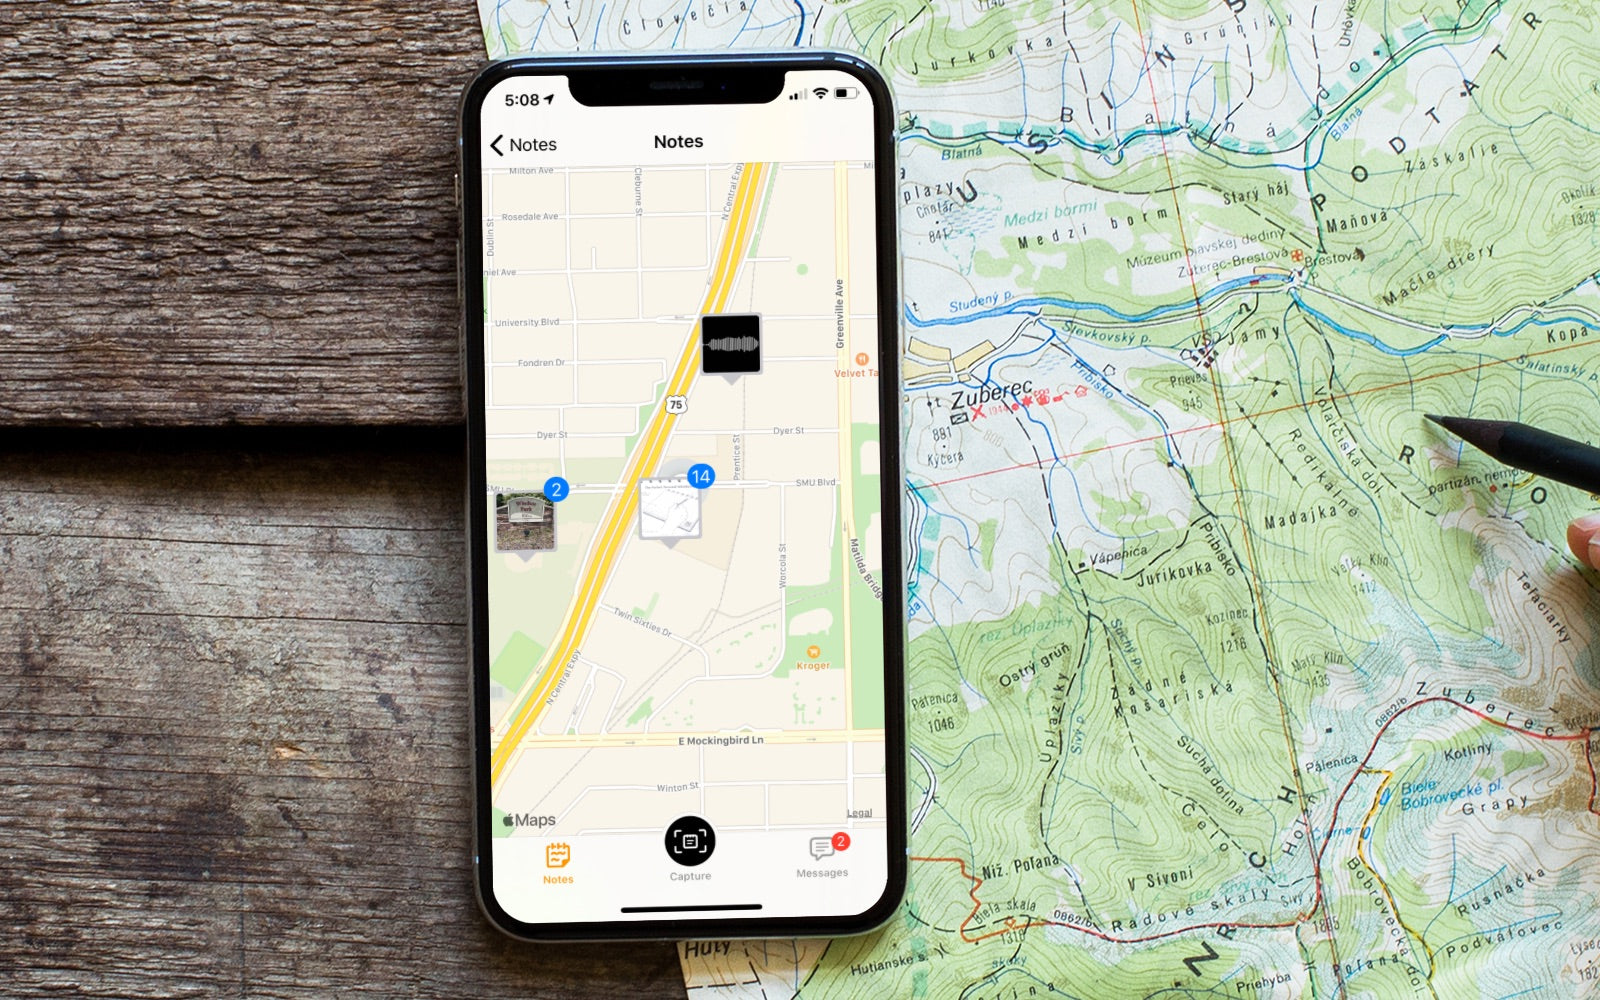 Do you travel? The THINKERS App makes it easy to find your notes with our built-in mapping feature. The perfect solution for consultants, bloggers, and travelers that want a quick way to find their handwritten notes based on their location.